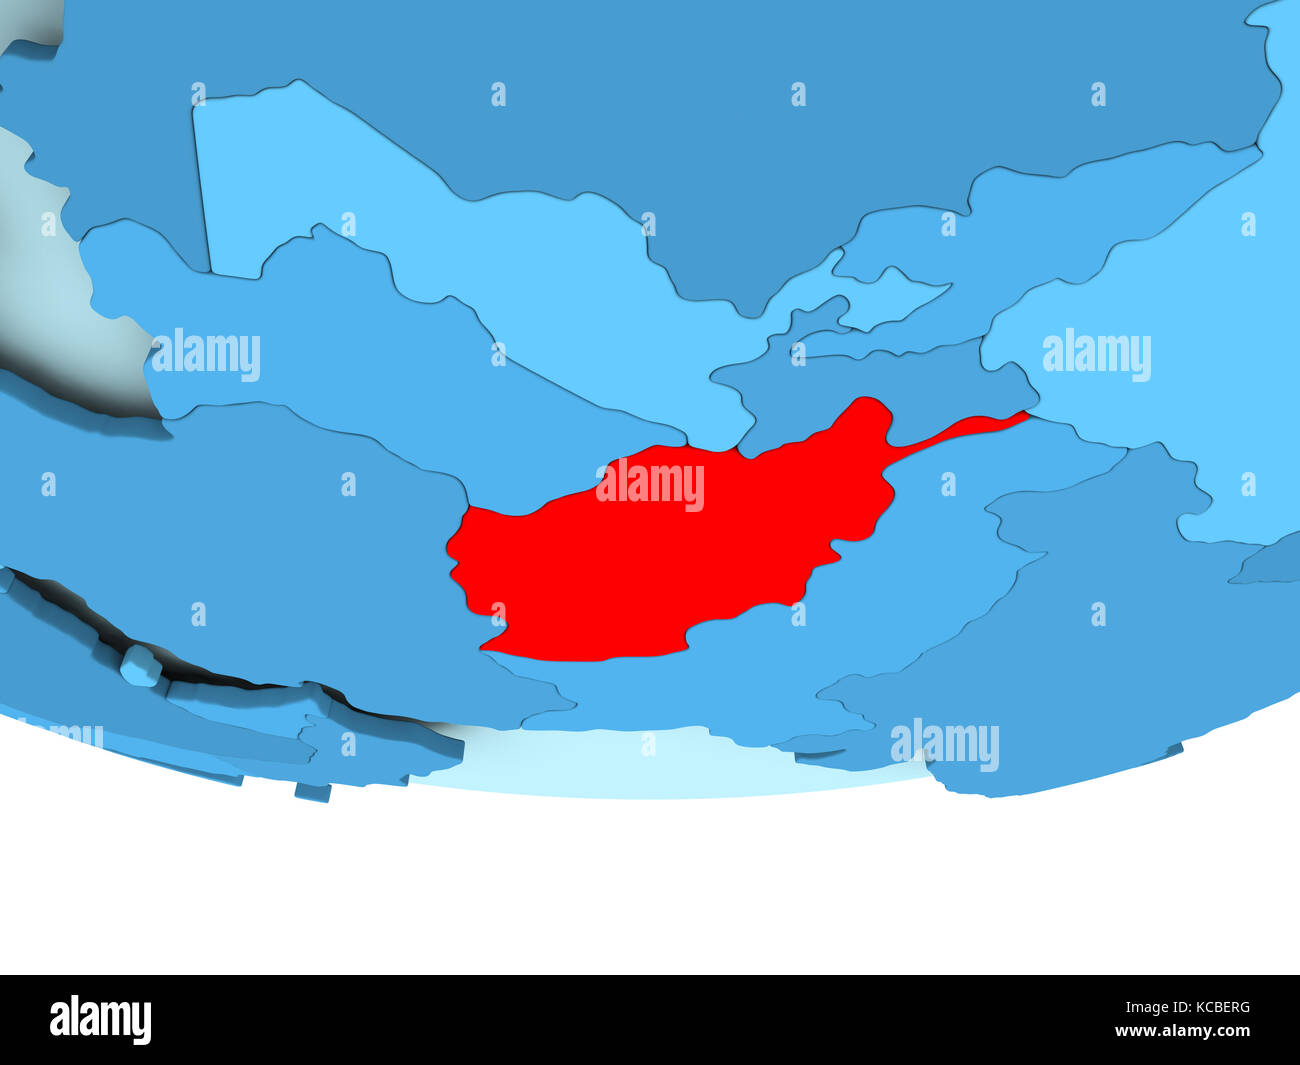 Illustration Of Afghanistan Highlighted In Red On Blue Globe 3d